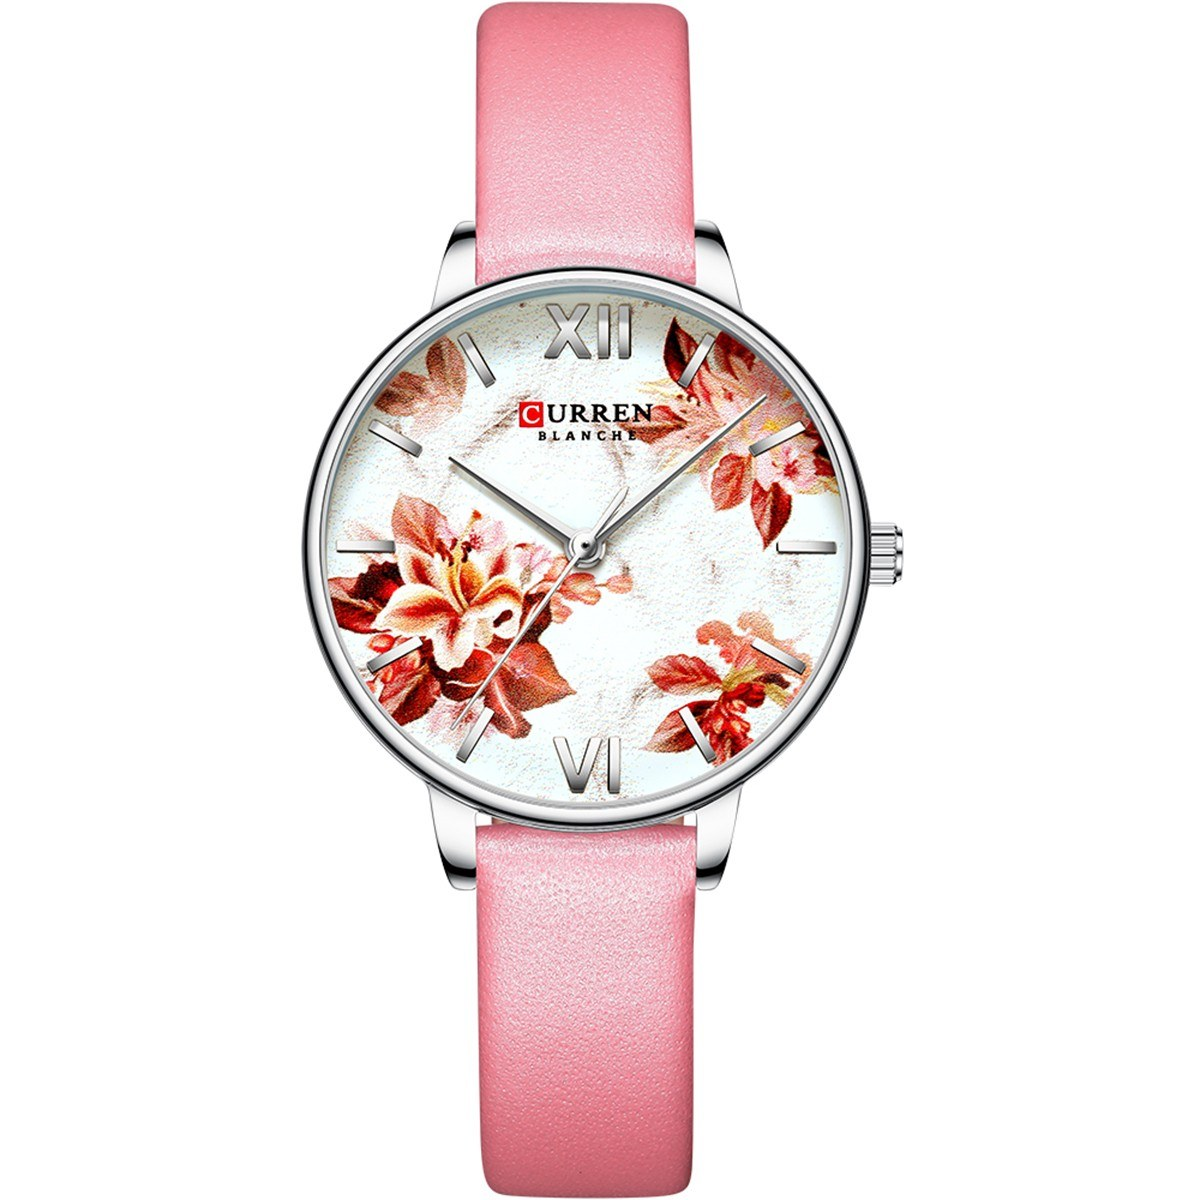 CURREN 9060 Luxury Casual Business Quartz Women Watch Flower Dial Elegant Exquisite Lady Wrist Watch 3ATM Waterproof Clock Wristwatch for Female Ladies with Imitation Leather Strap Band